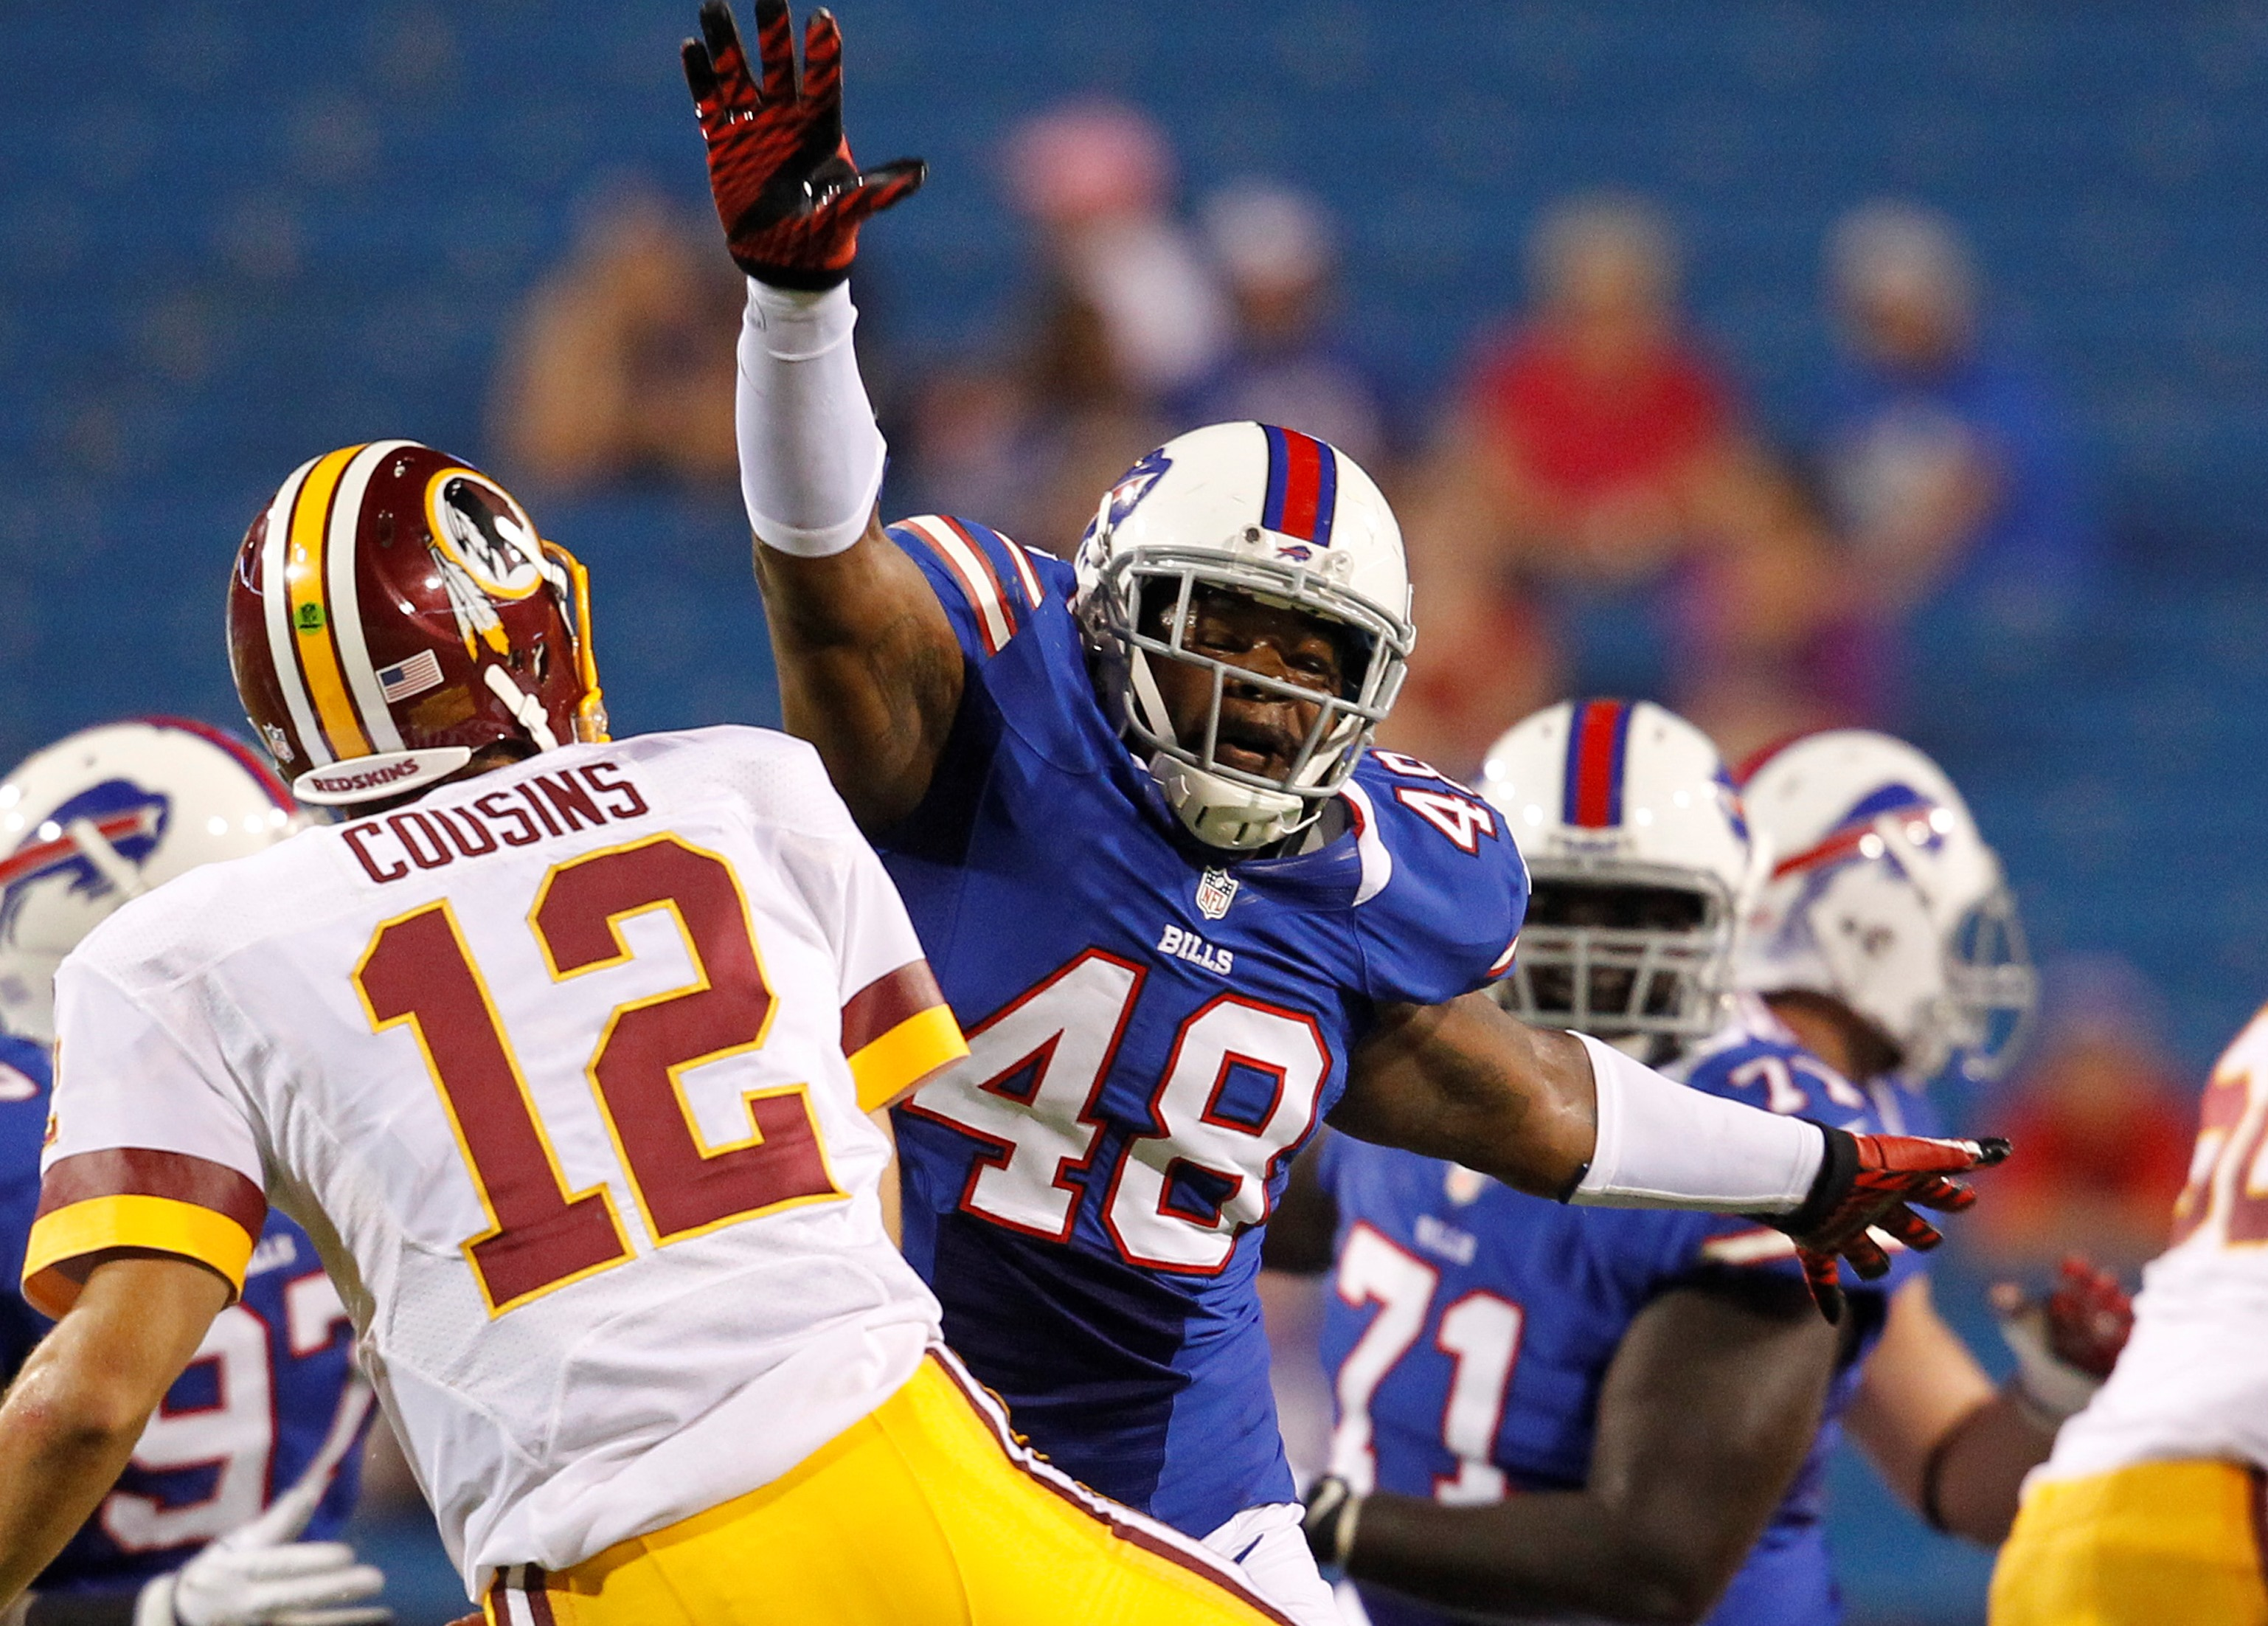 Robert Eddins in action during a preseason game against the Washington Redskins on Aug. 9, 2012. (Harry Scull Jr. /News file photo)